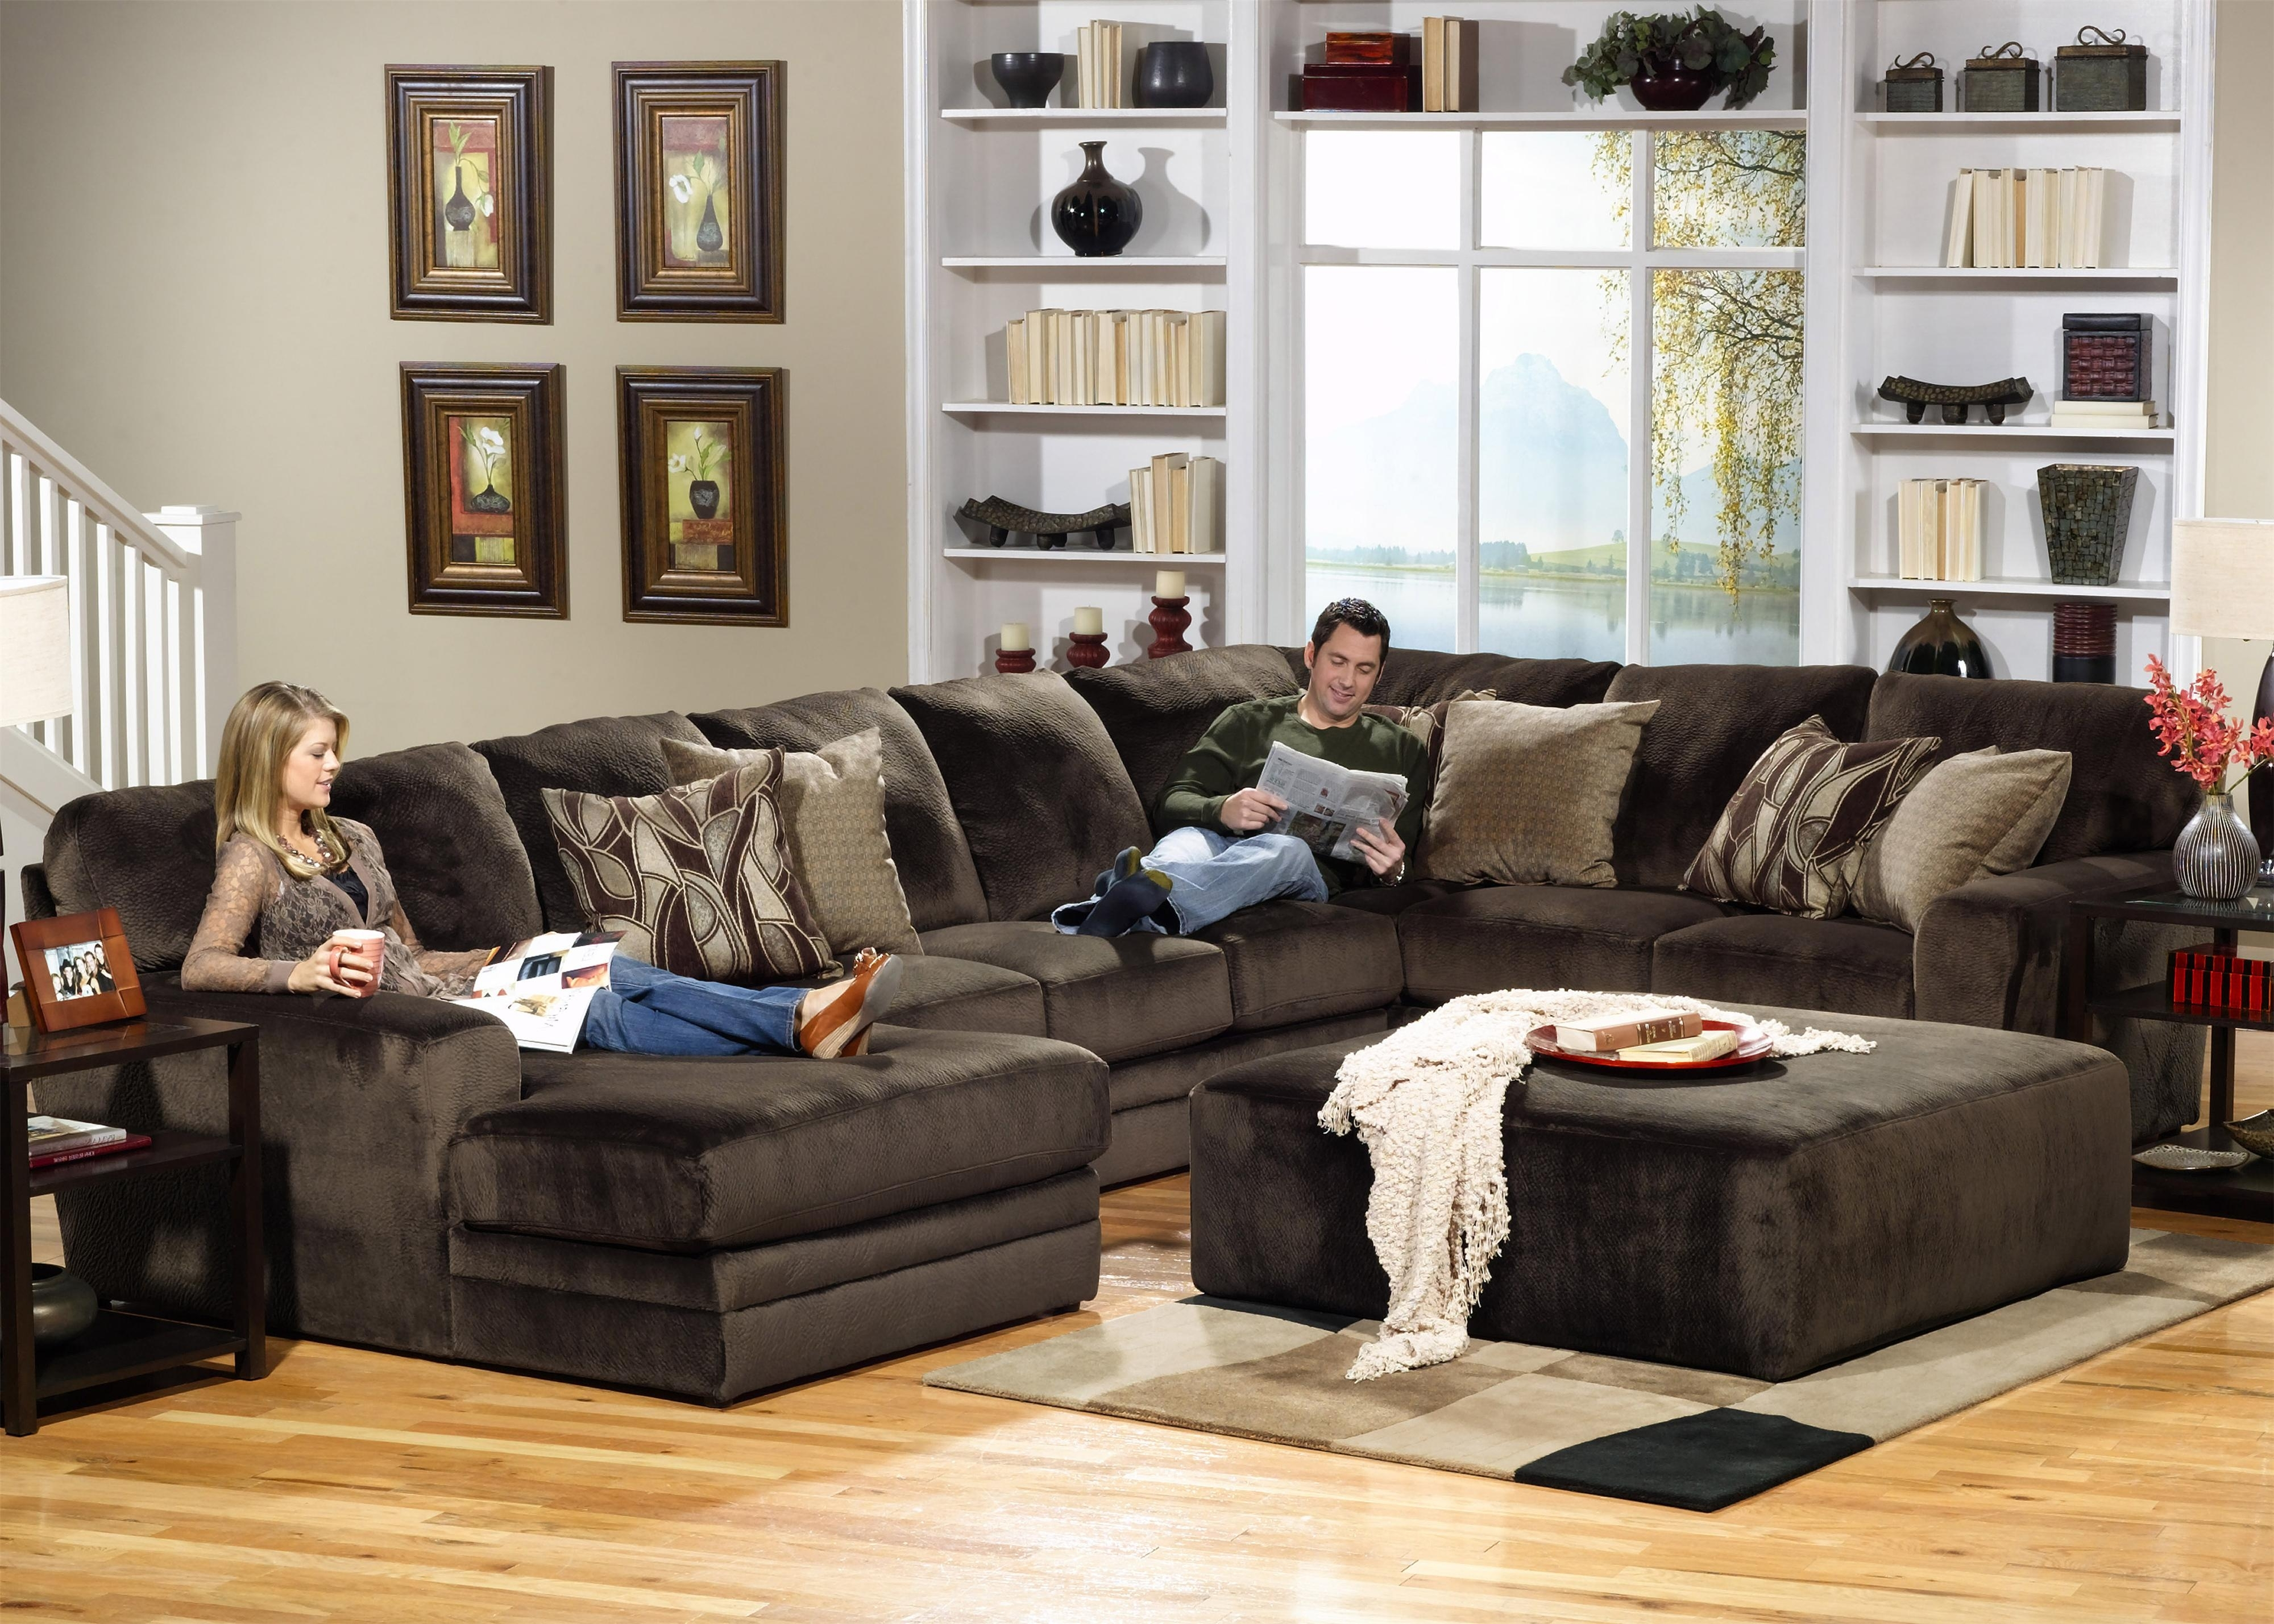 3 Piece Sectional With Rsf Sectionjackson Furniture | Wolf And Inside Harrisburg Pa Sectional Sofas (View 7 of 10)